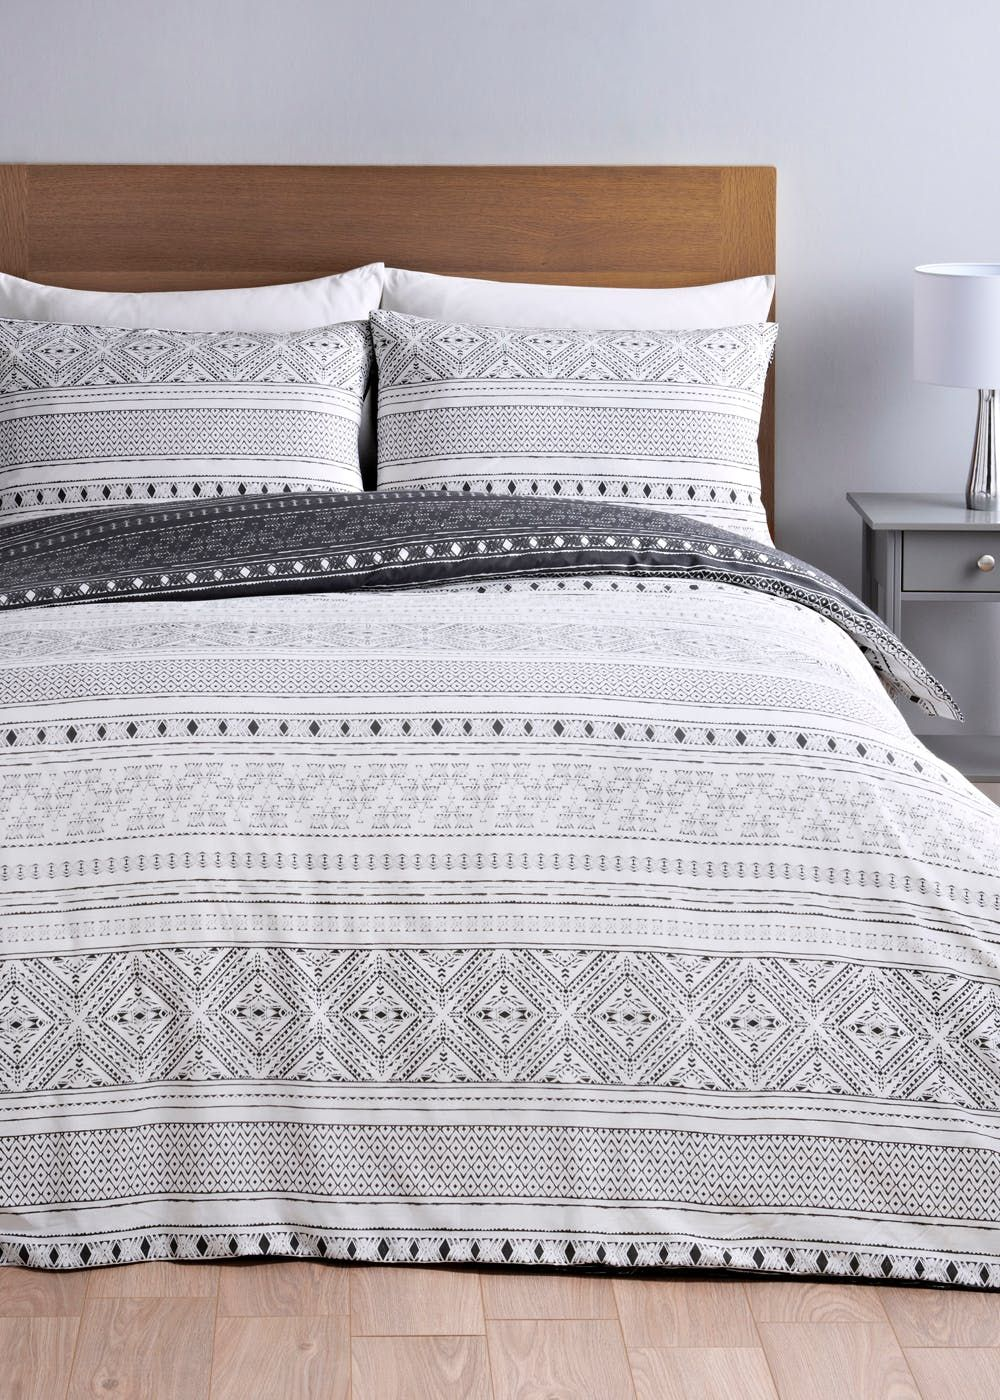 Buy Duvet Cover Aztec Print Duvet Cover In 2019 Home To Buy Duvet Covers